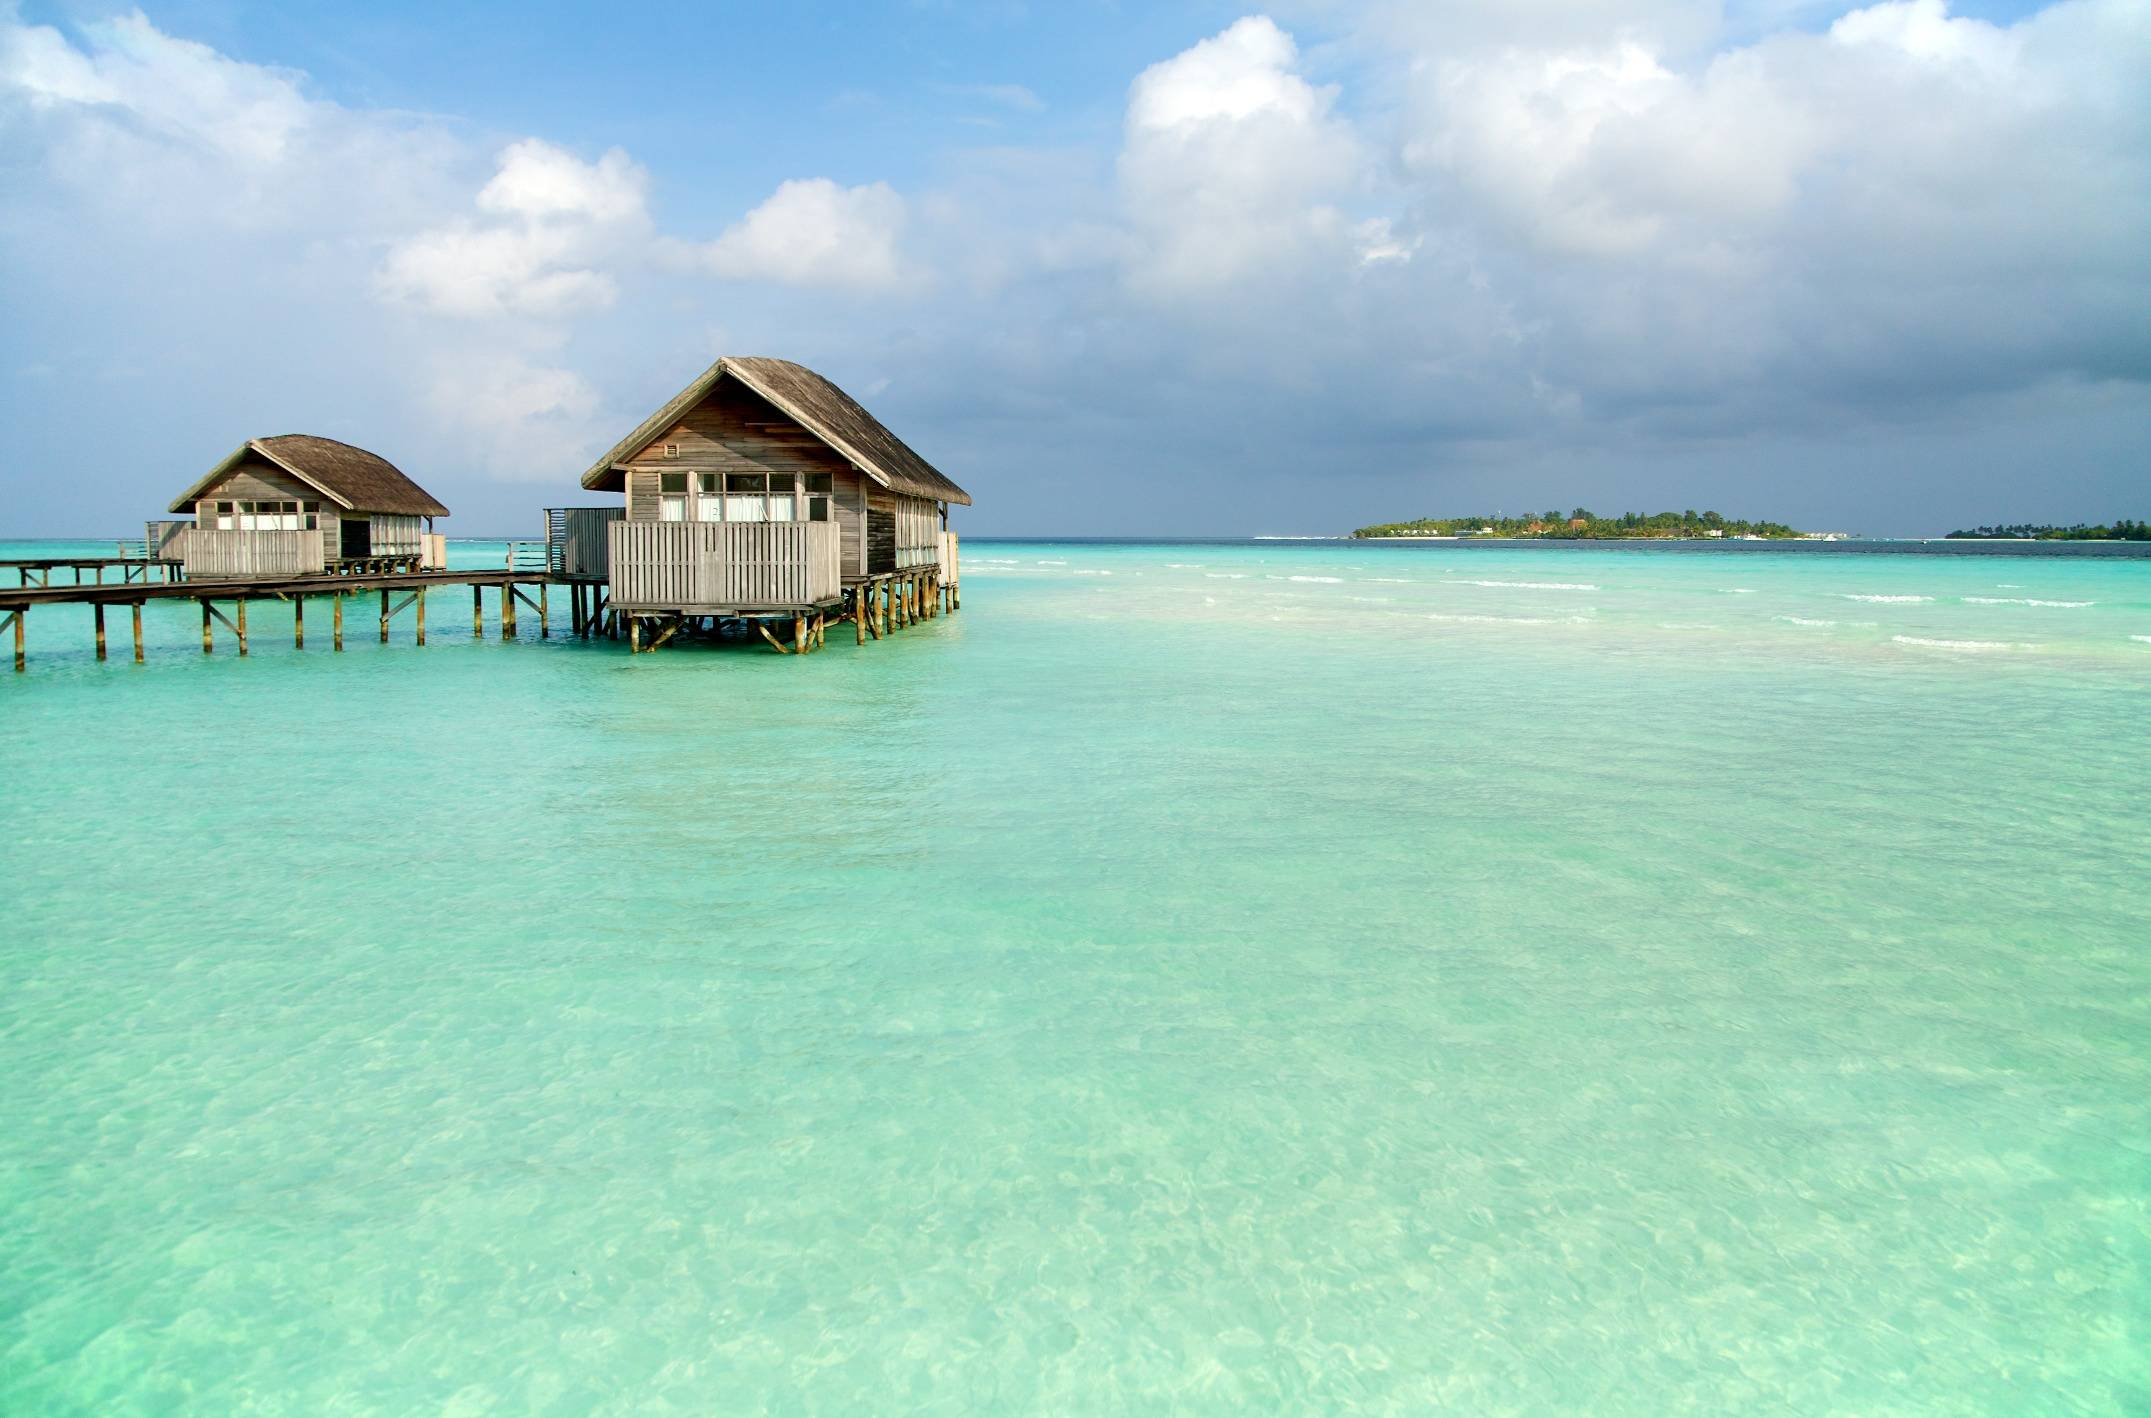 Maldives, rest and relax travel destination